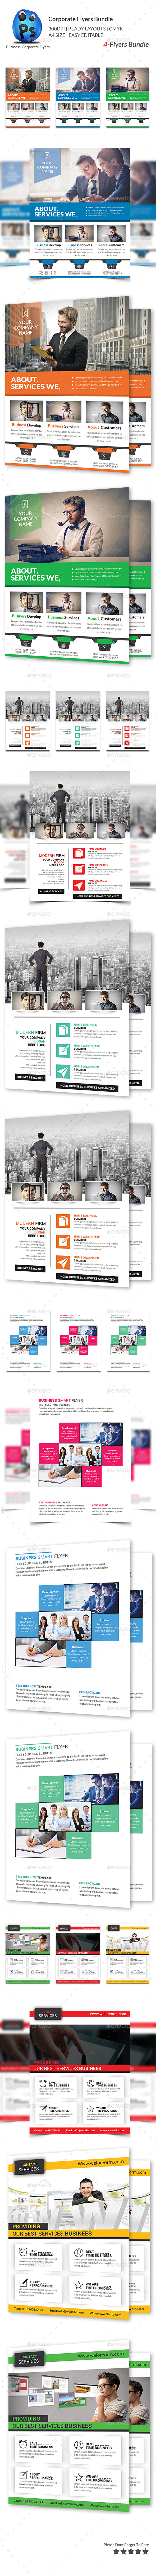 Corporate Business 4 Flyer Bundle - Corporate Flyers